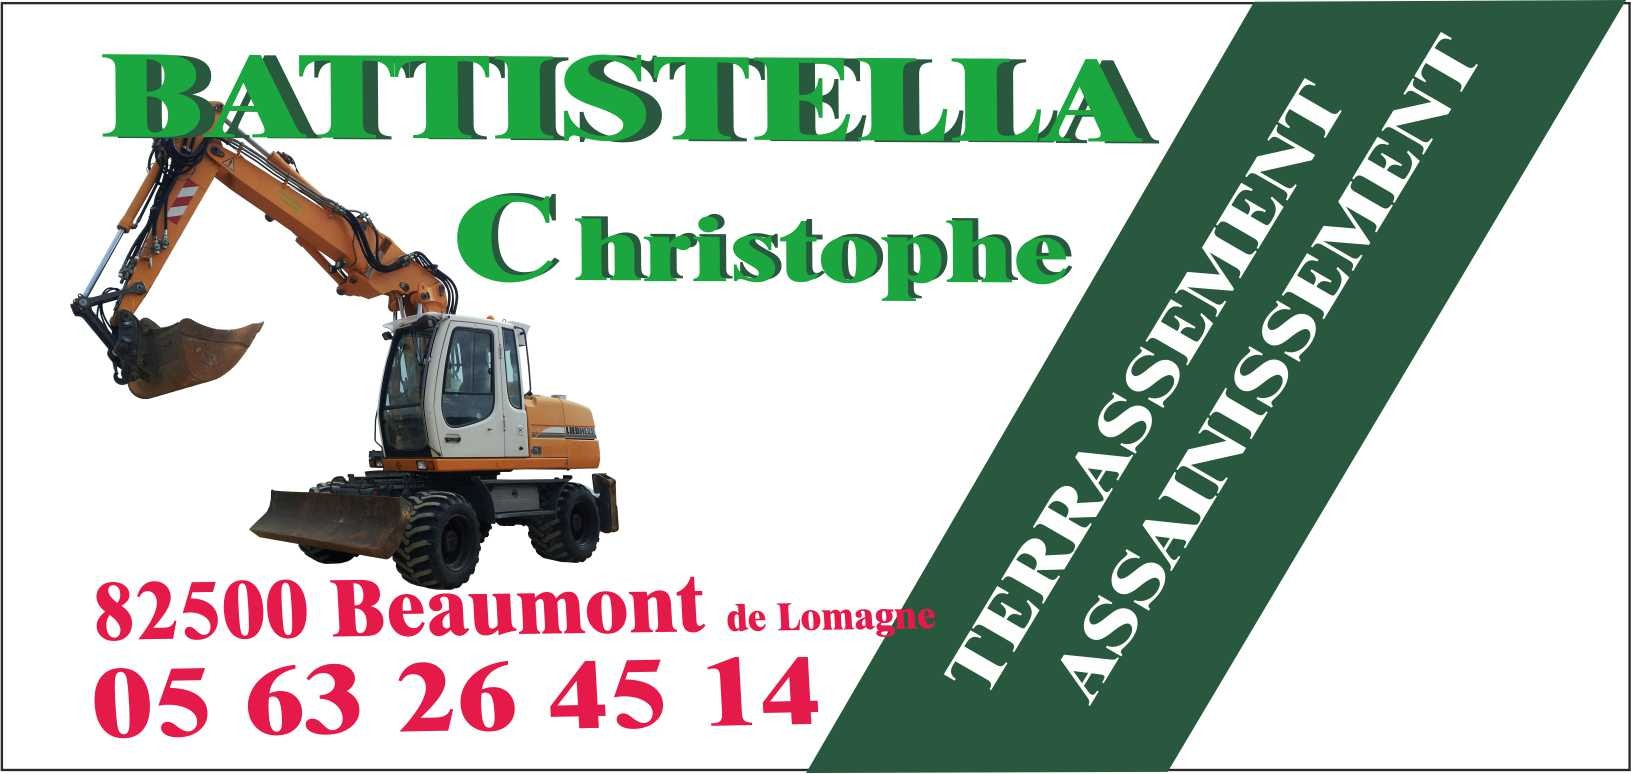 Terrassement Assainissement - Christophe BATTISTELLA